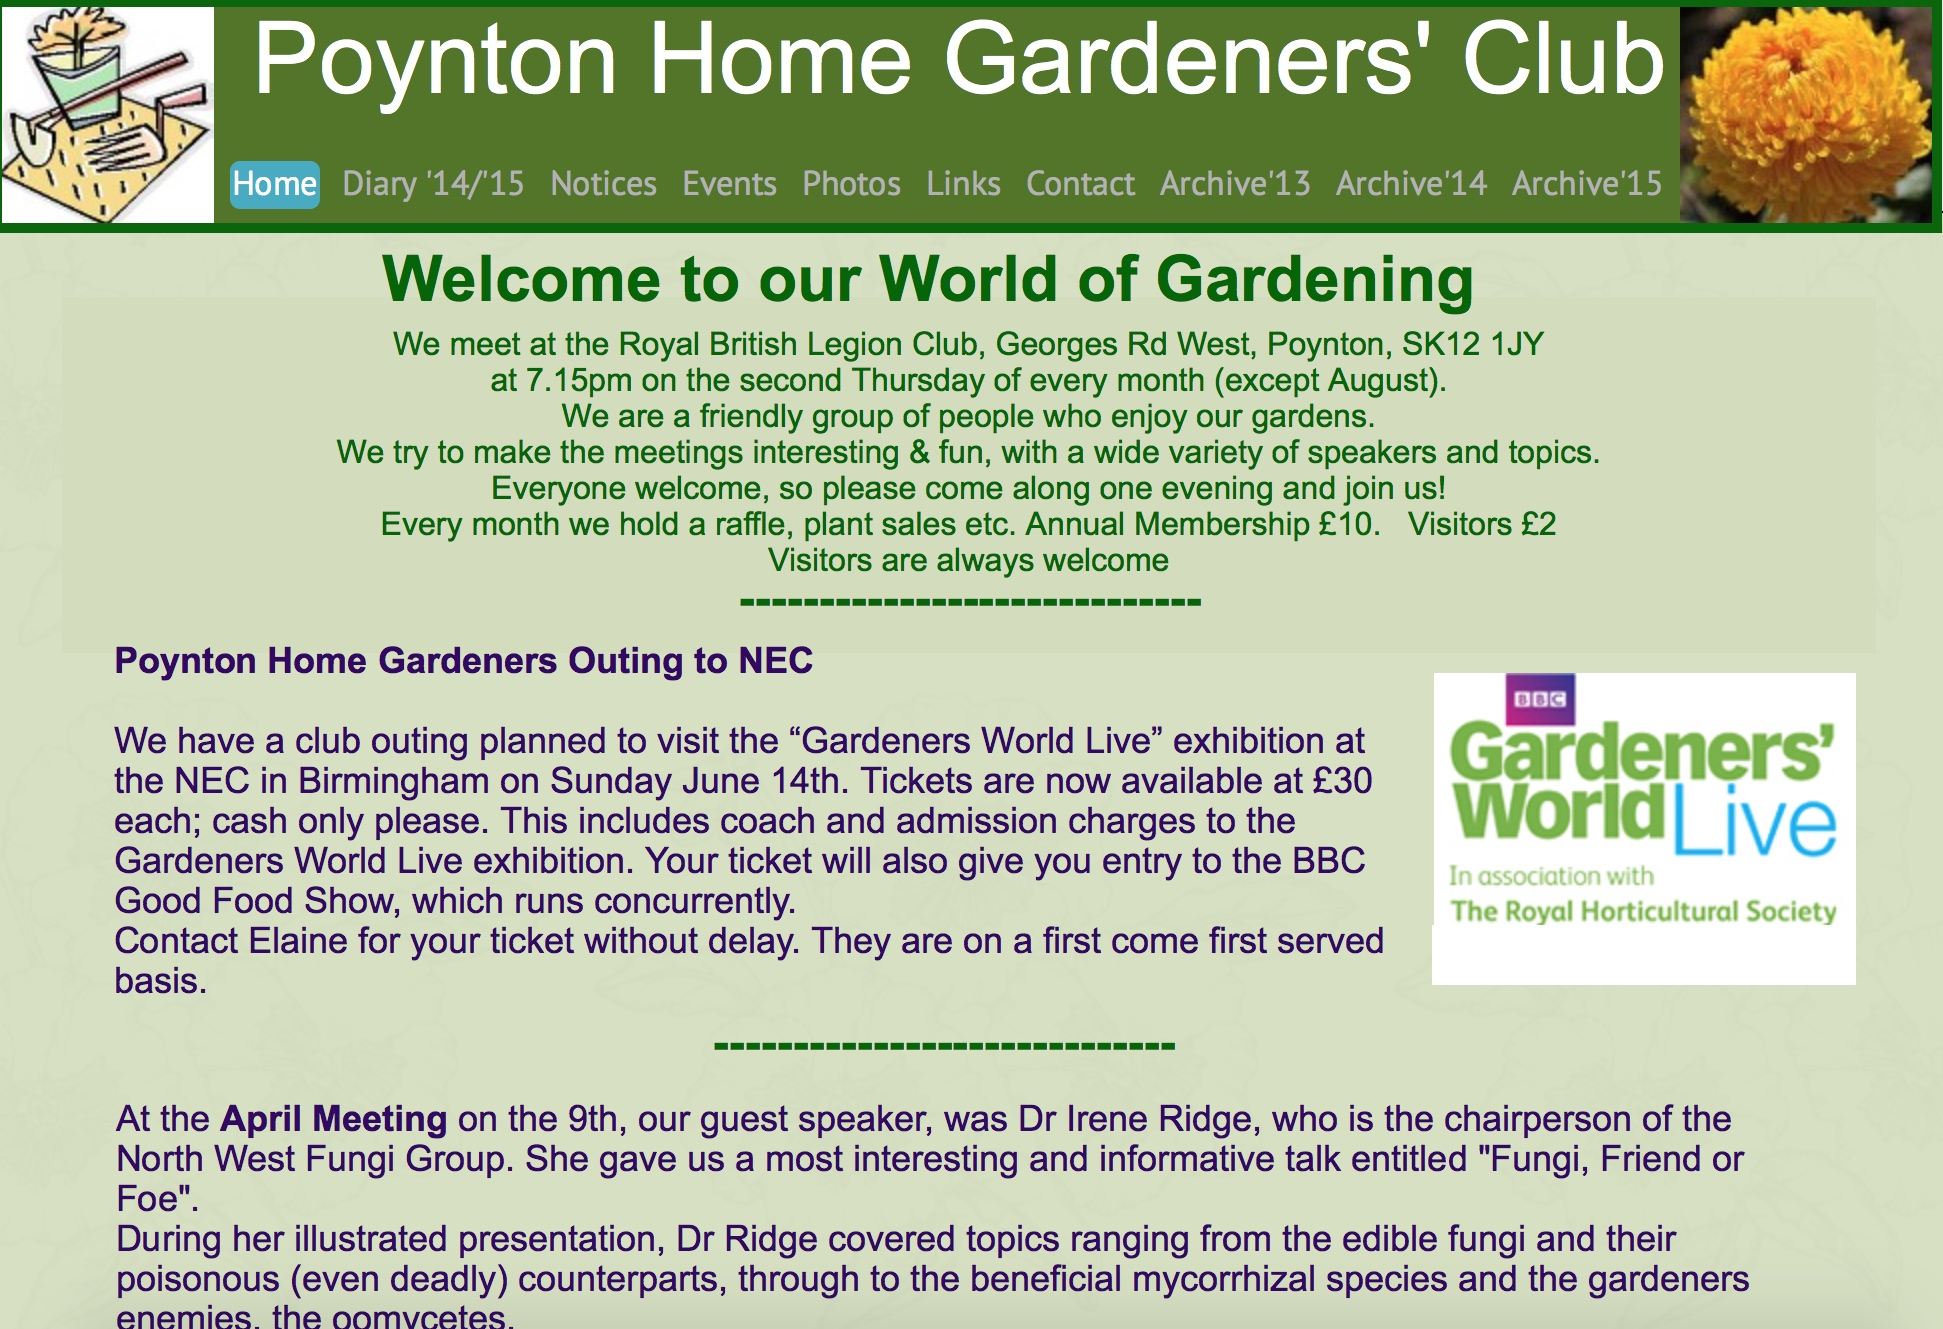 poynton home gardeners club click image for more details - Home Gardening Club